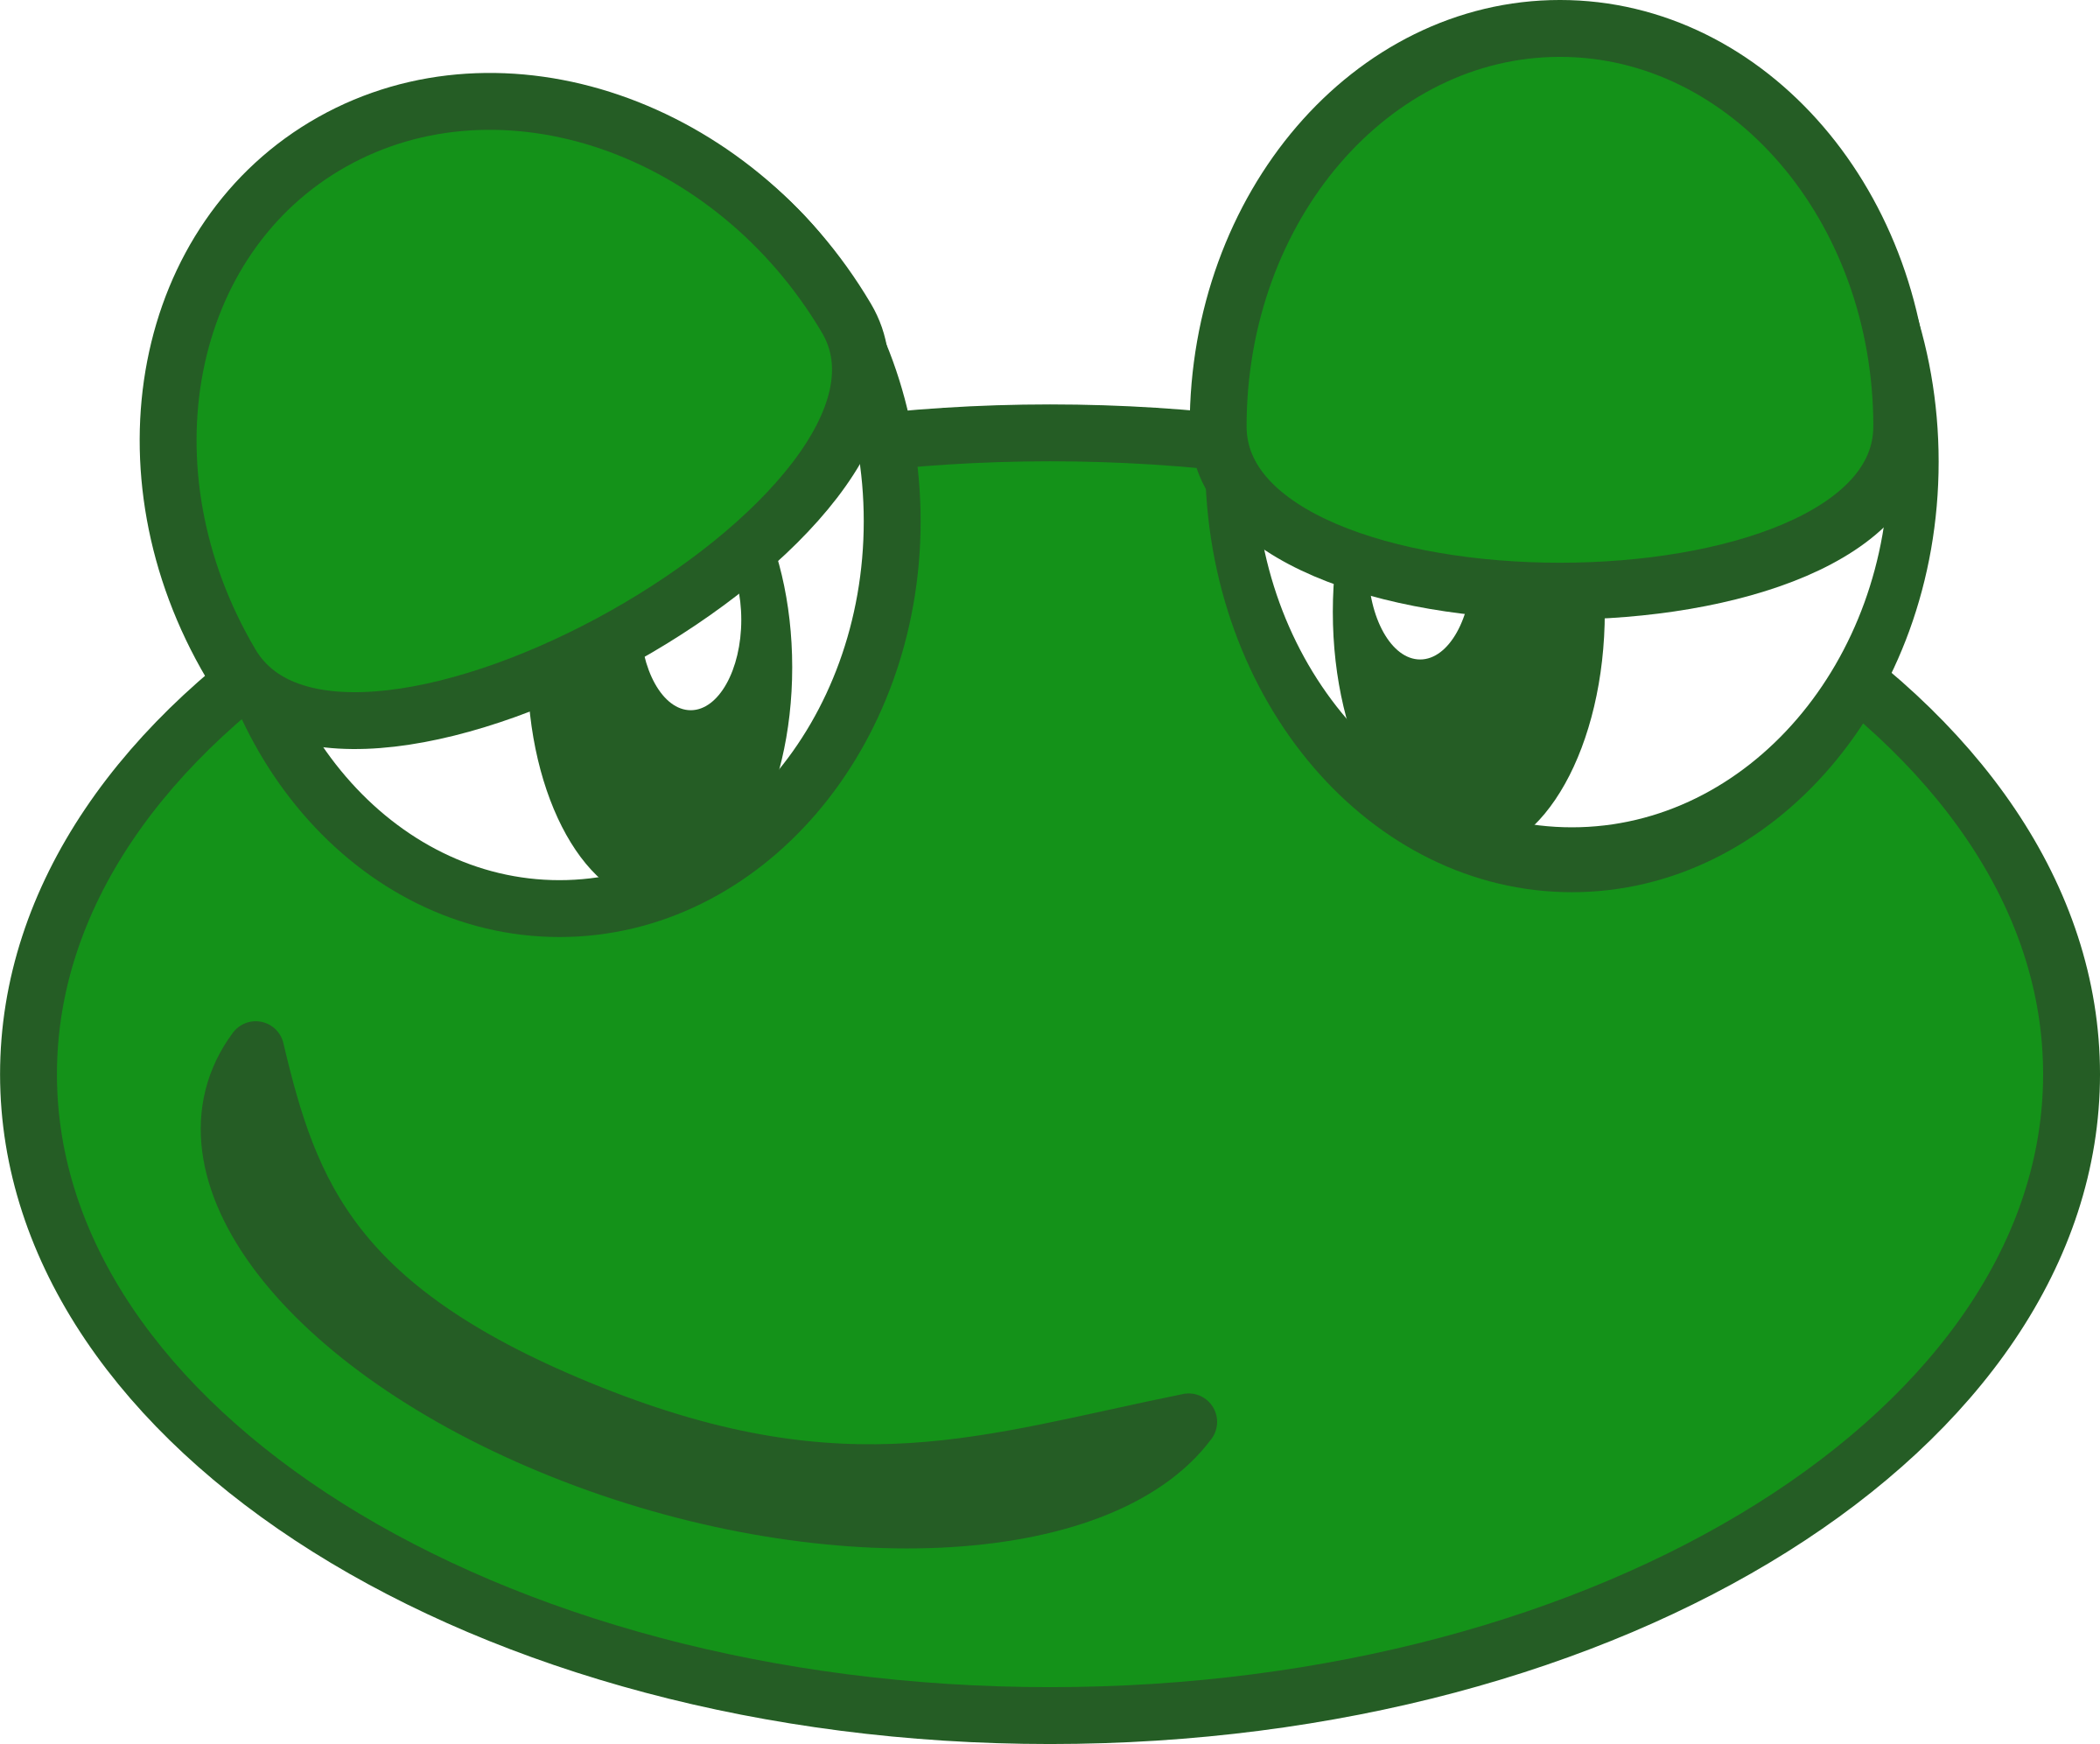 Frogs clipart head. Frog clipground